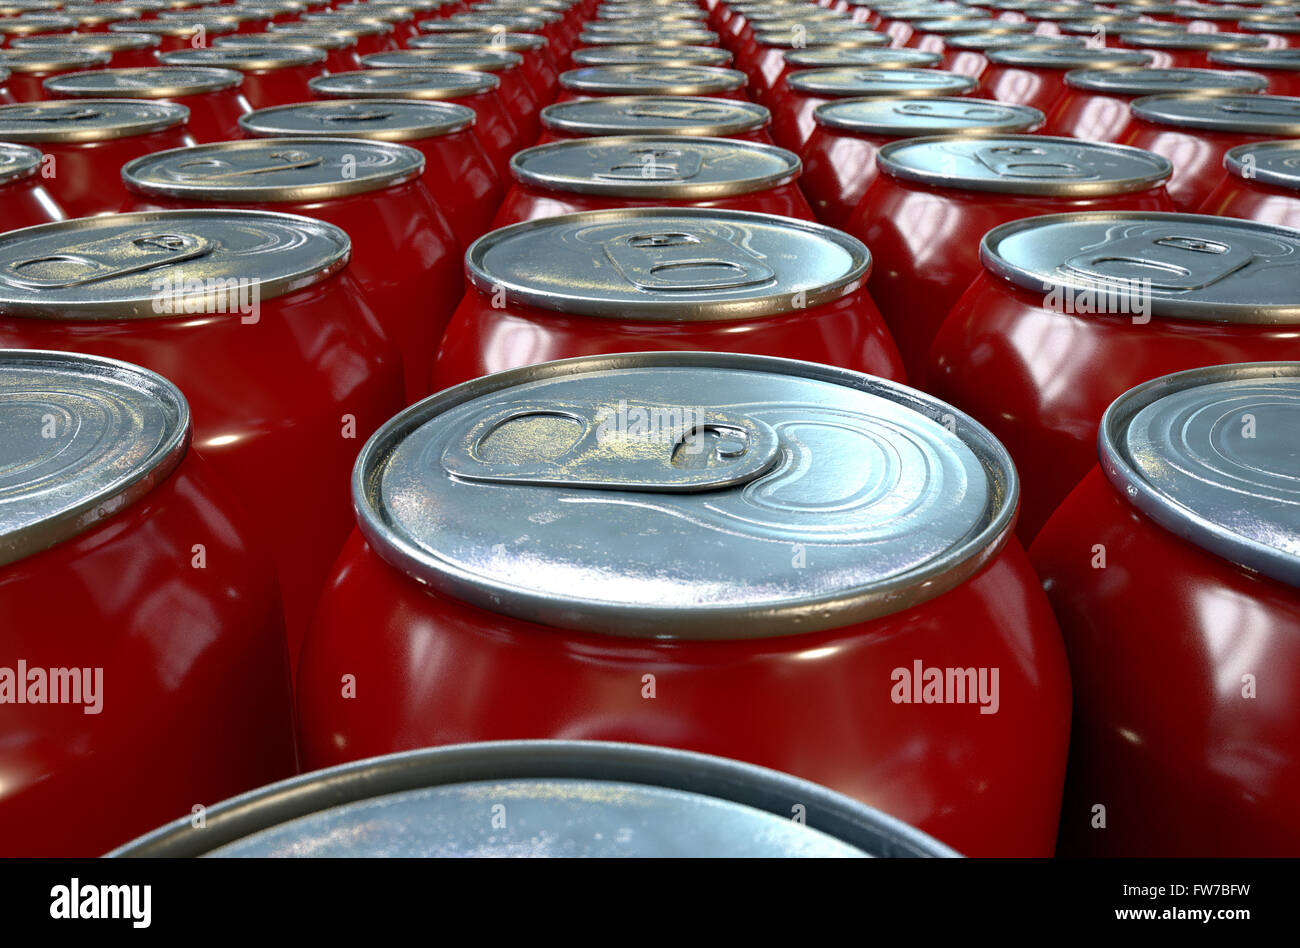 A collection of tin drink cans at the end of a factory production line - Stock Image